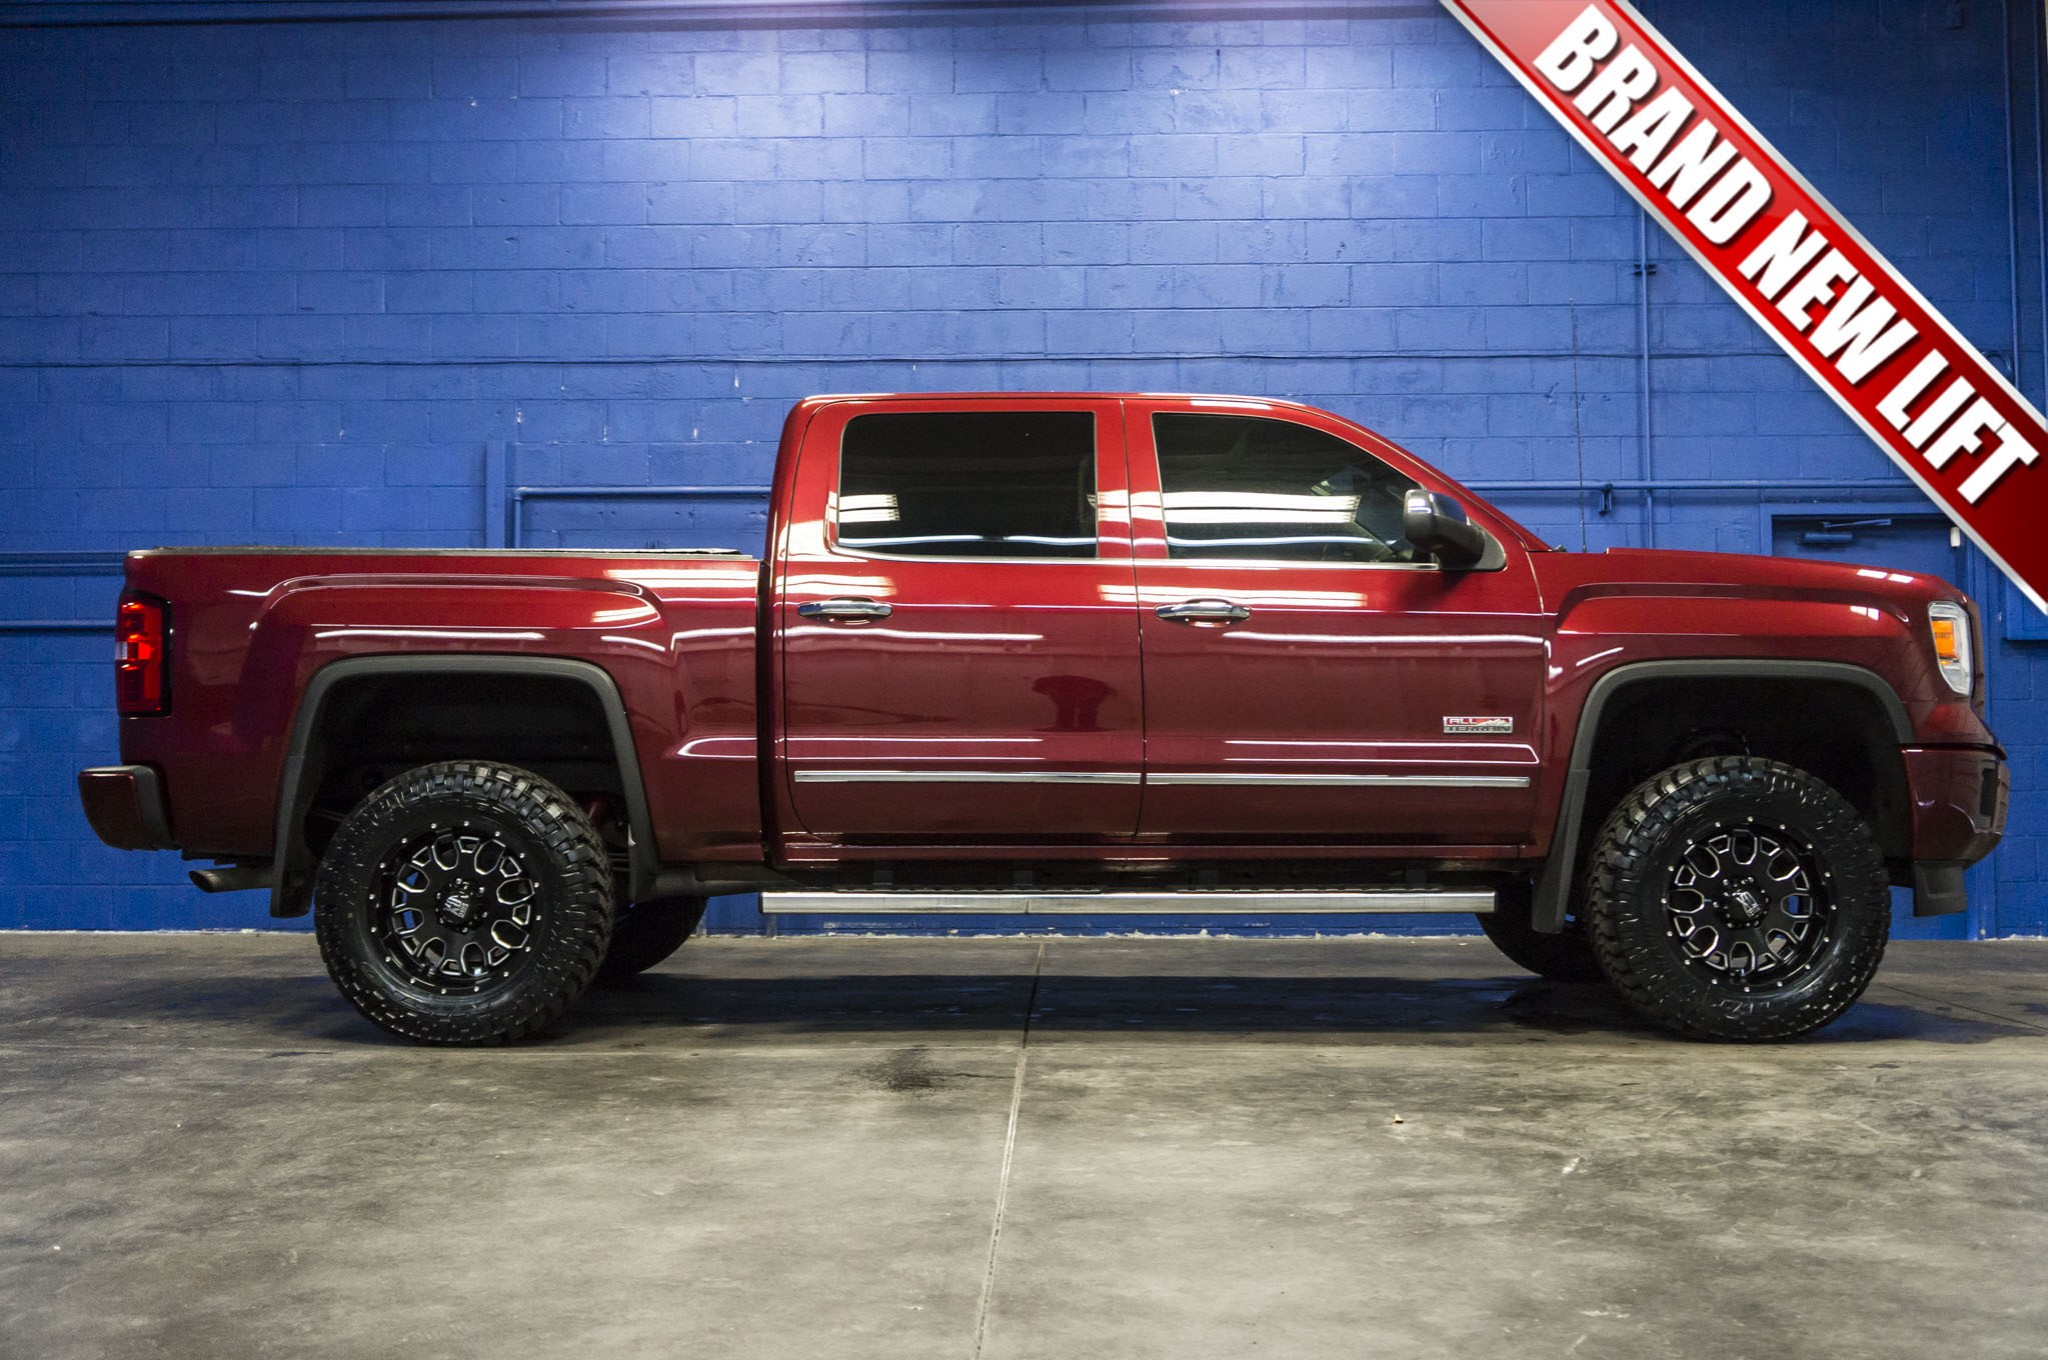 used lifted 2014 gmc sierra 1500 all terrain 4x4 truck for sale 34034. Black Bedroom Furniture Sets. Home Design Ideas